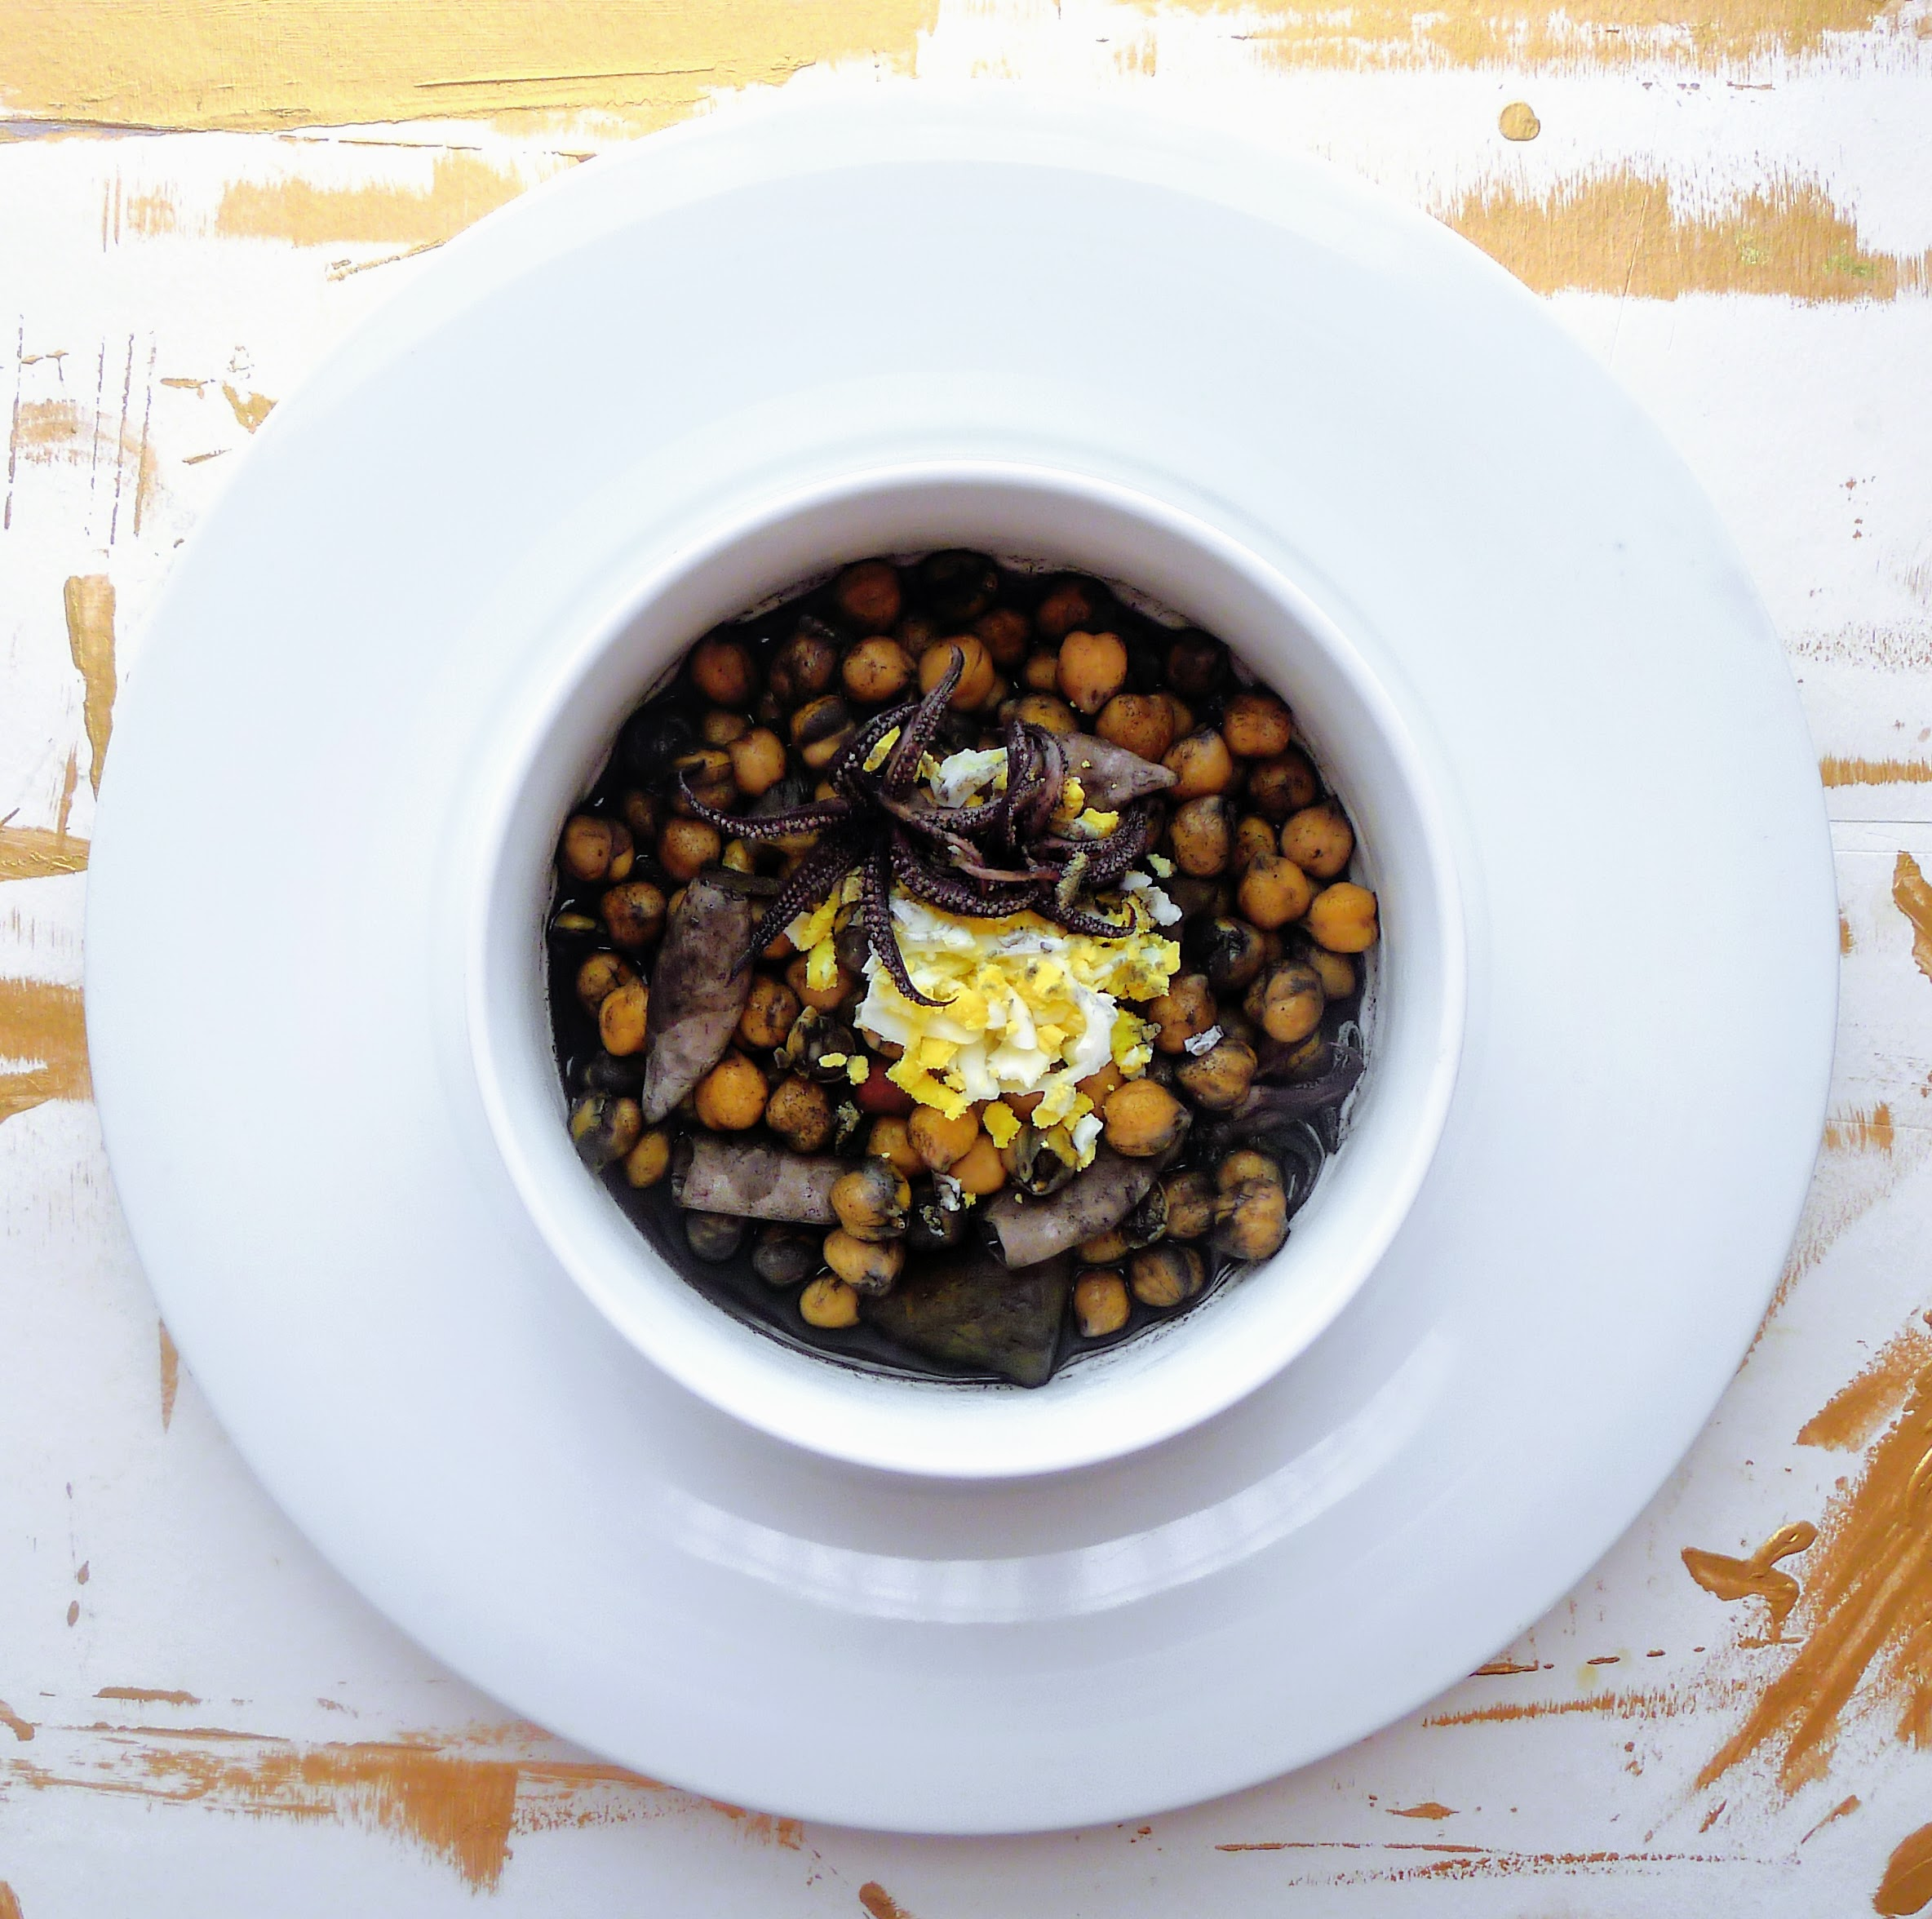 Chickpeas with Calamari in its own ink